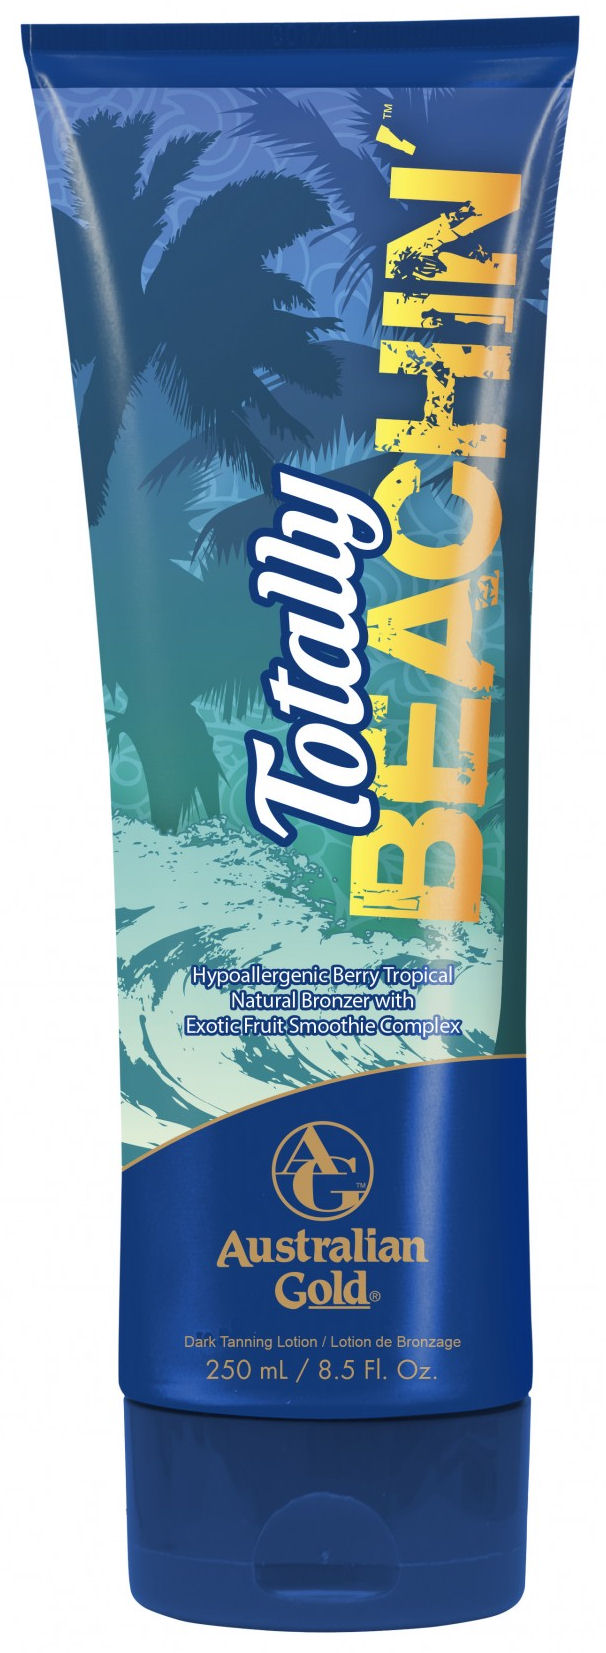 Totally Beachin'™ Hypoallergenic Berry Tropical Natural Bronzer